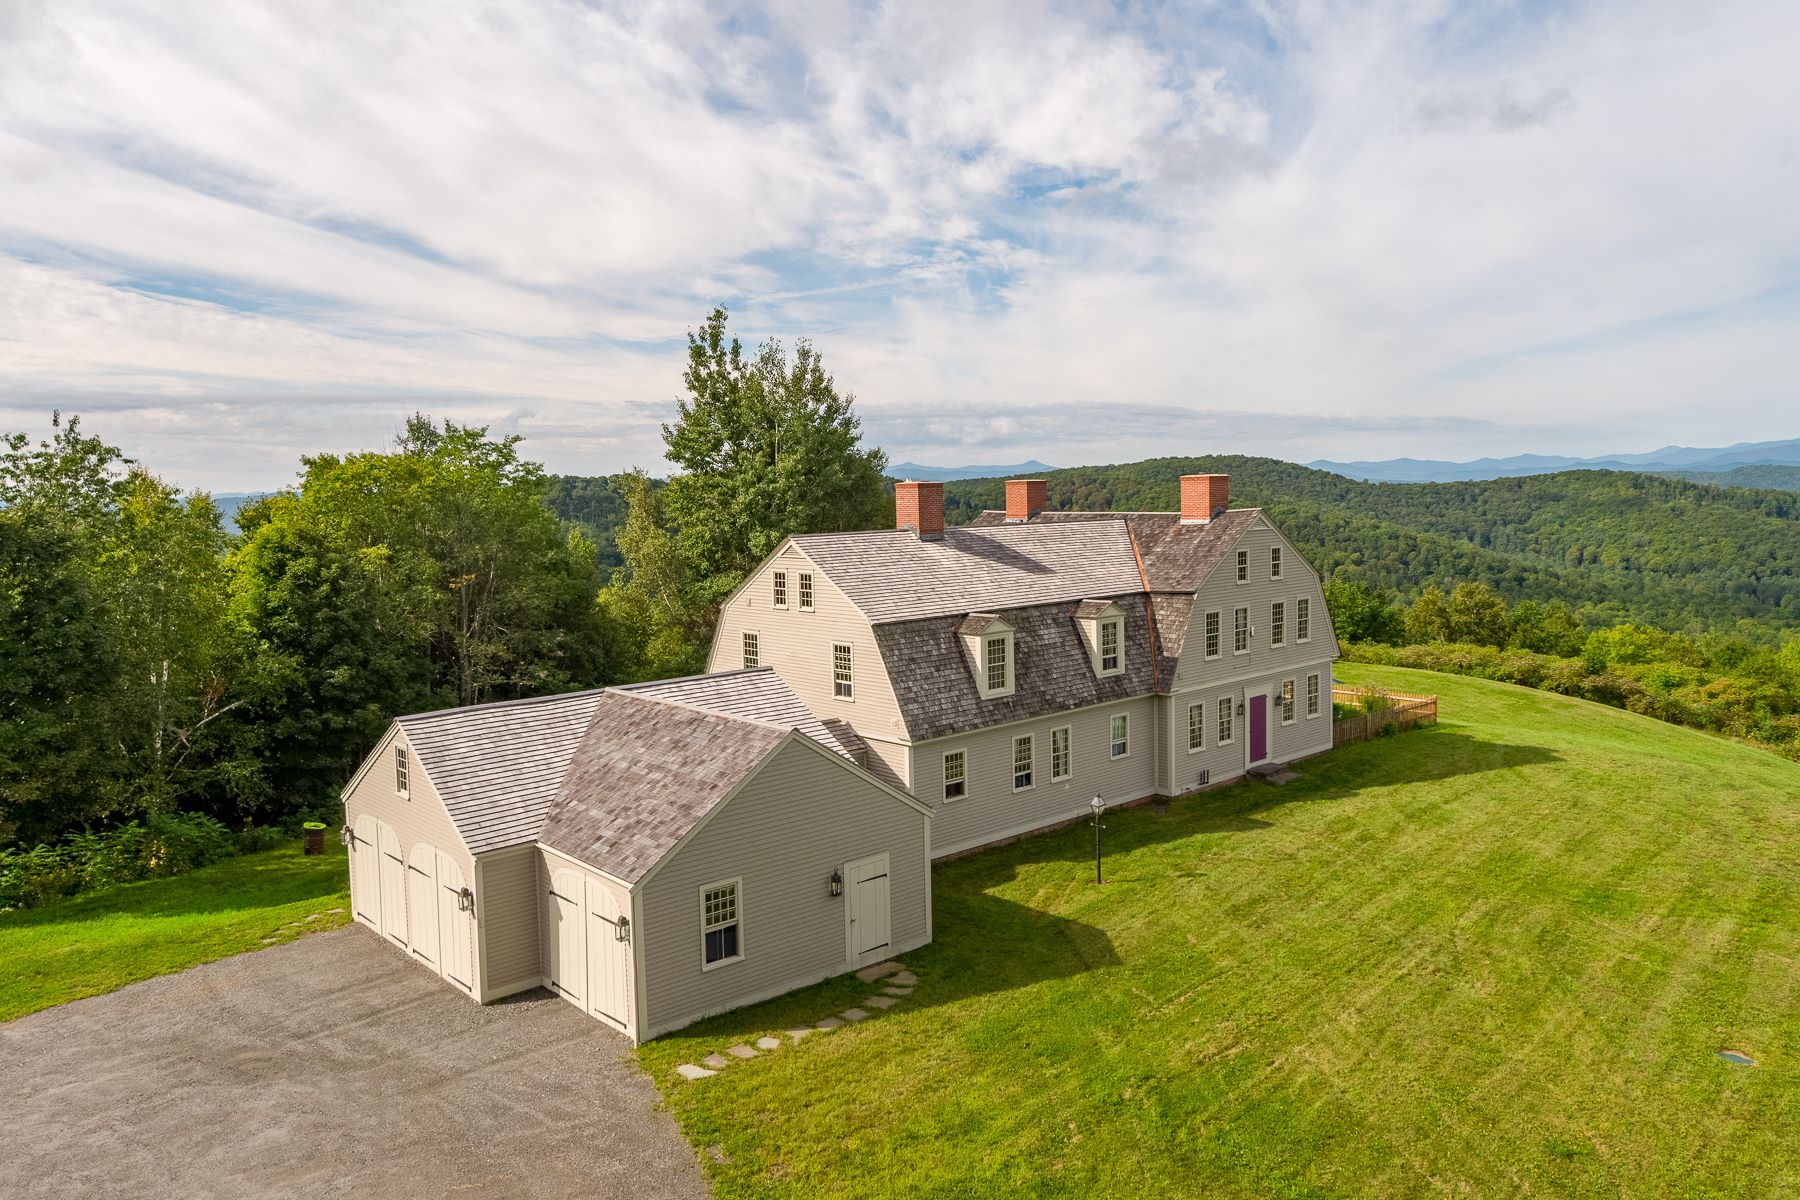 single family homes for Sale at Four Bedroom Reconstructed Antique Home with View 359 Potash Hill Rd Tunbridge, Vermont 05077 United States